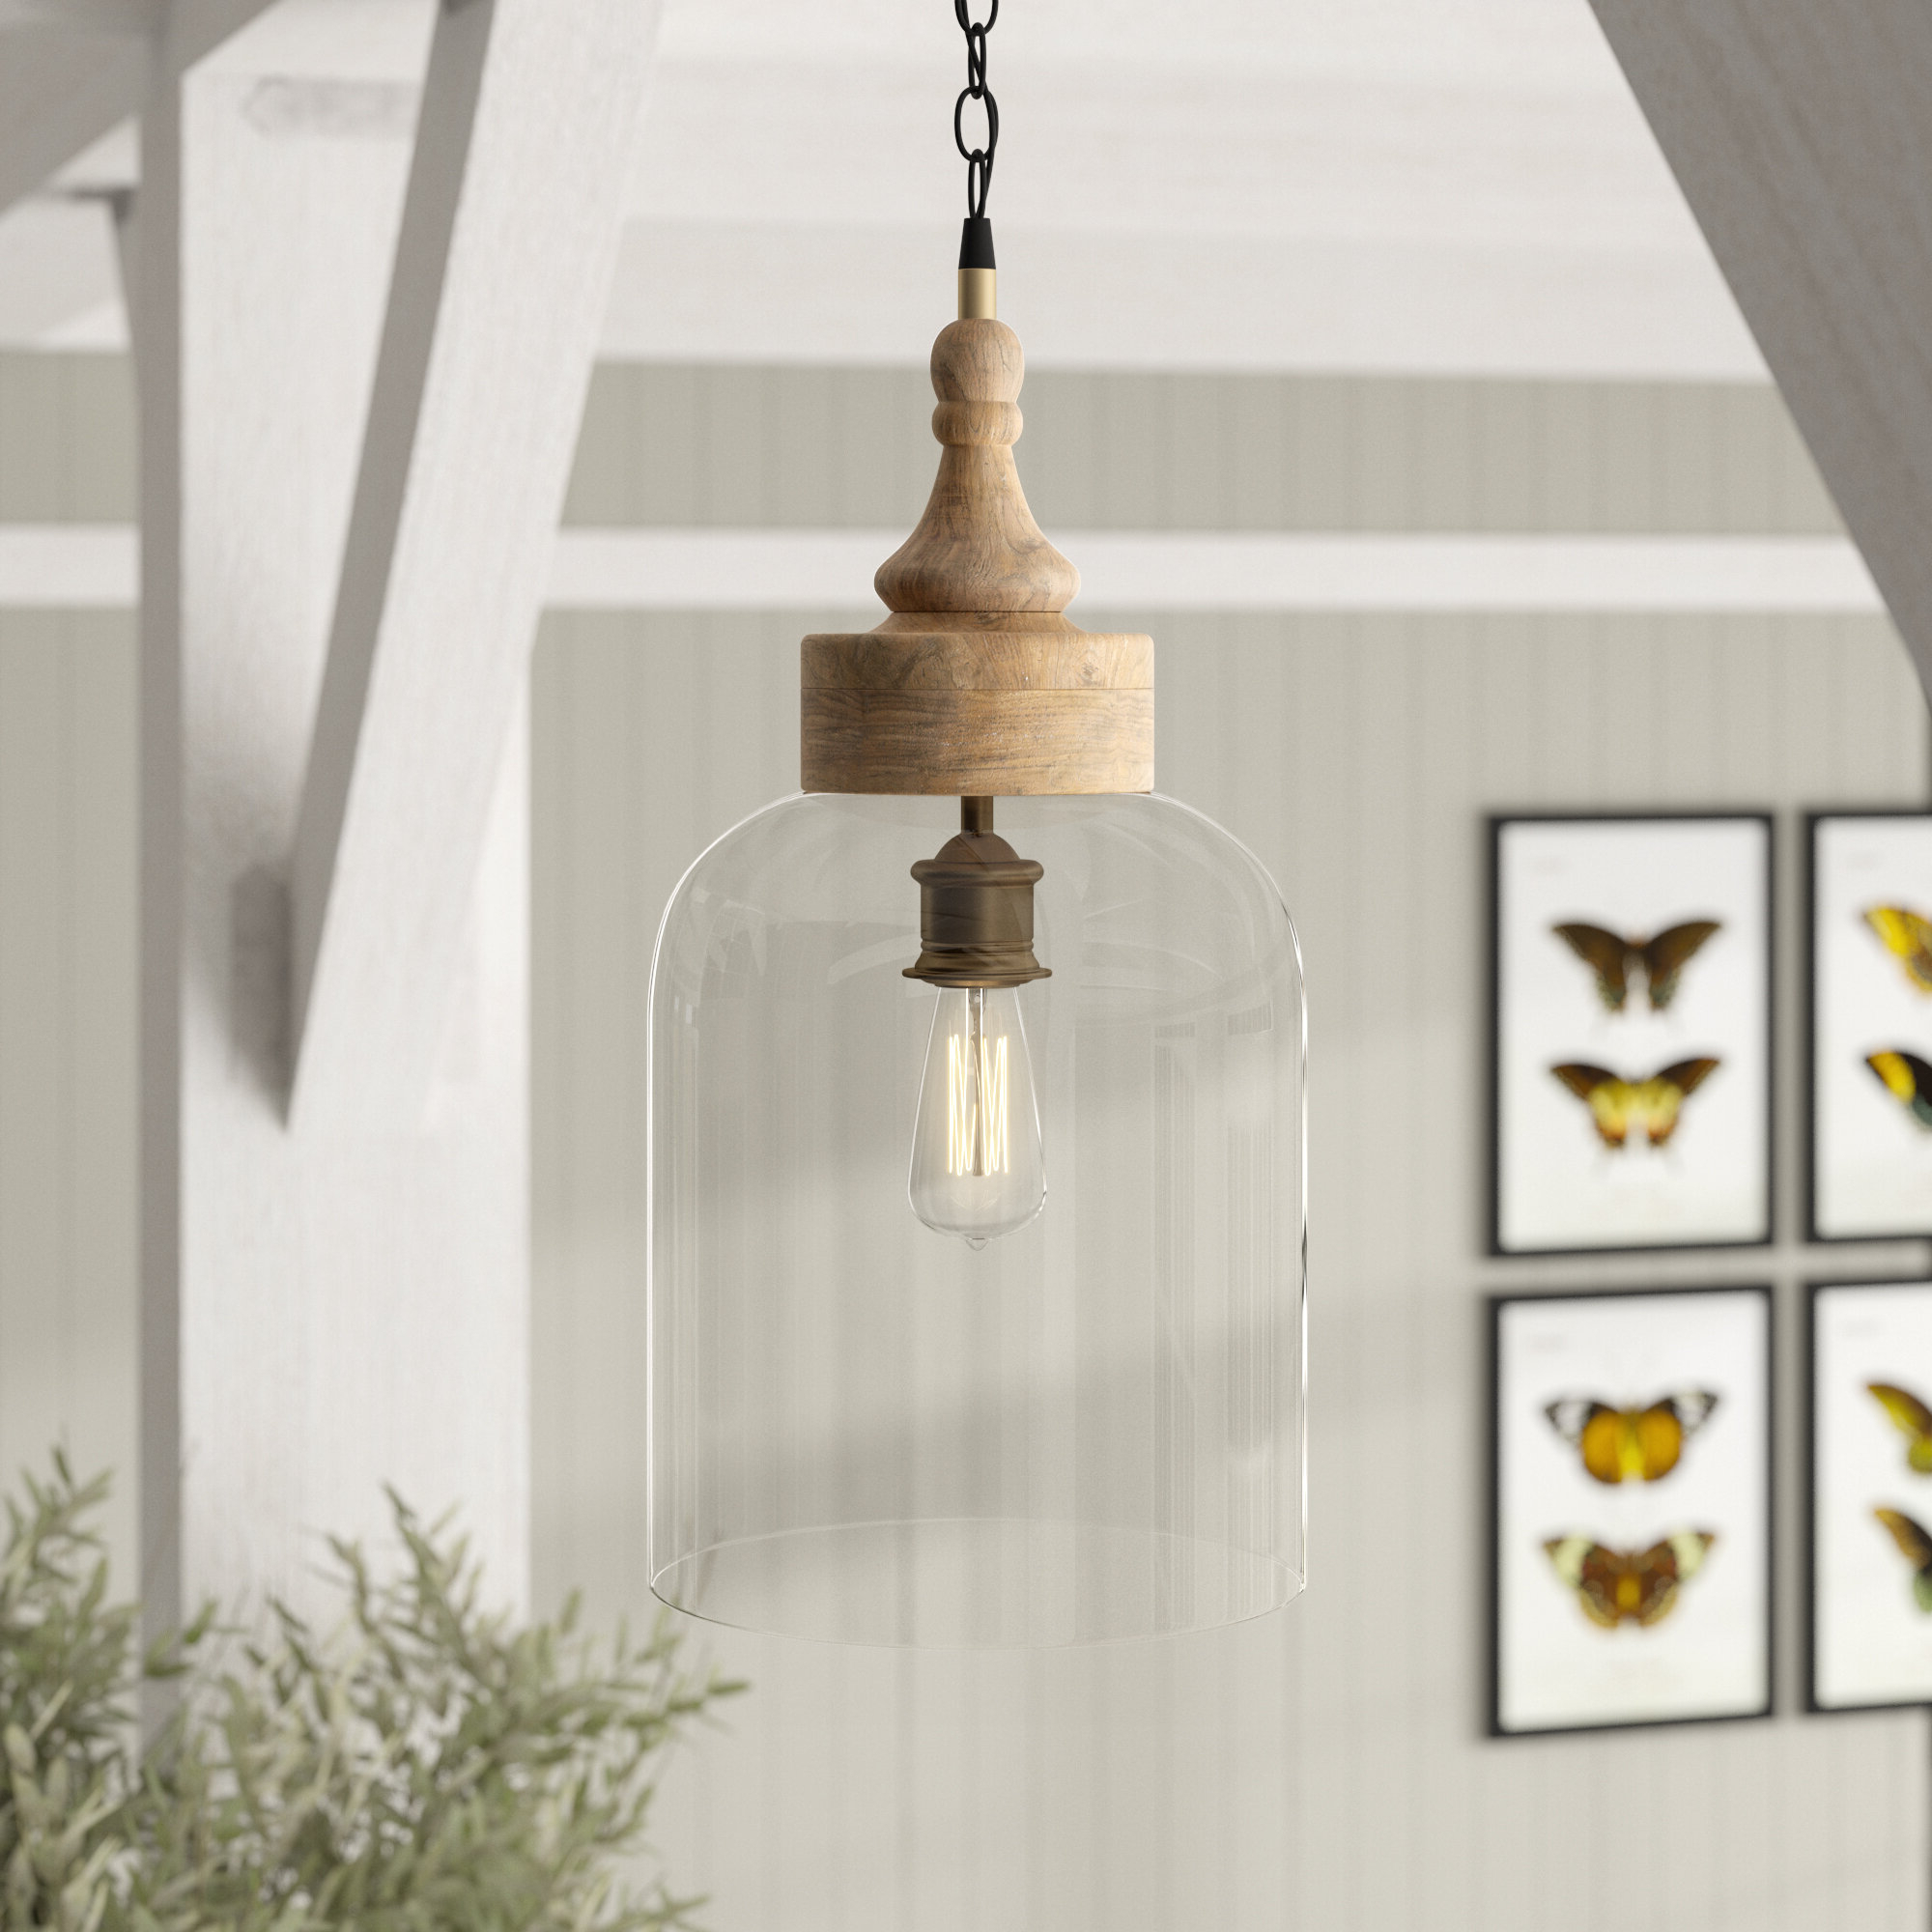 Moyer 1 Light Single Cylinder Pendants Intended For Best And Newest Olivo 1 Light Bell Pendant (View 11 of 25)